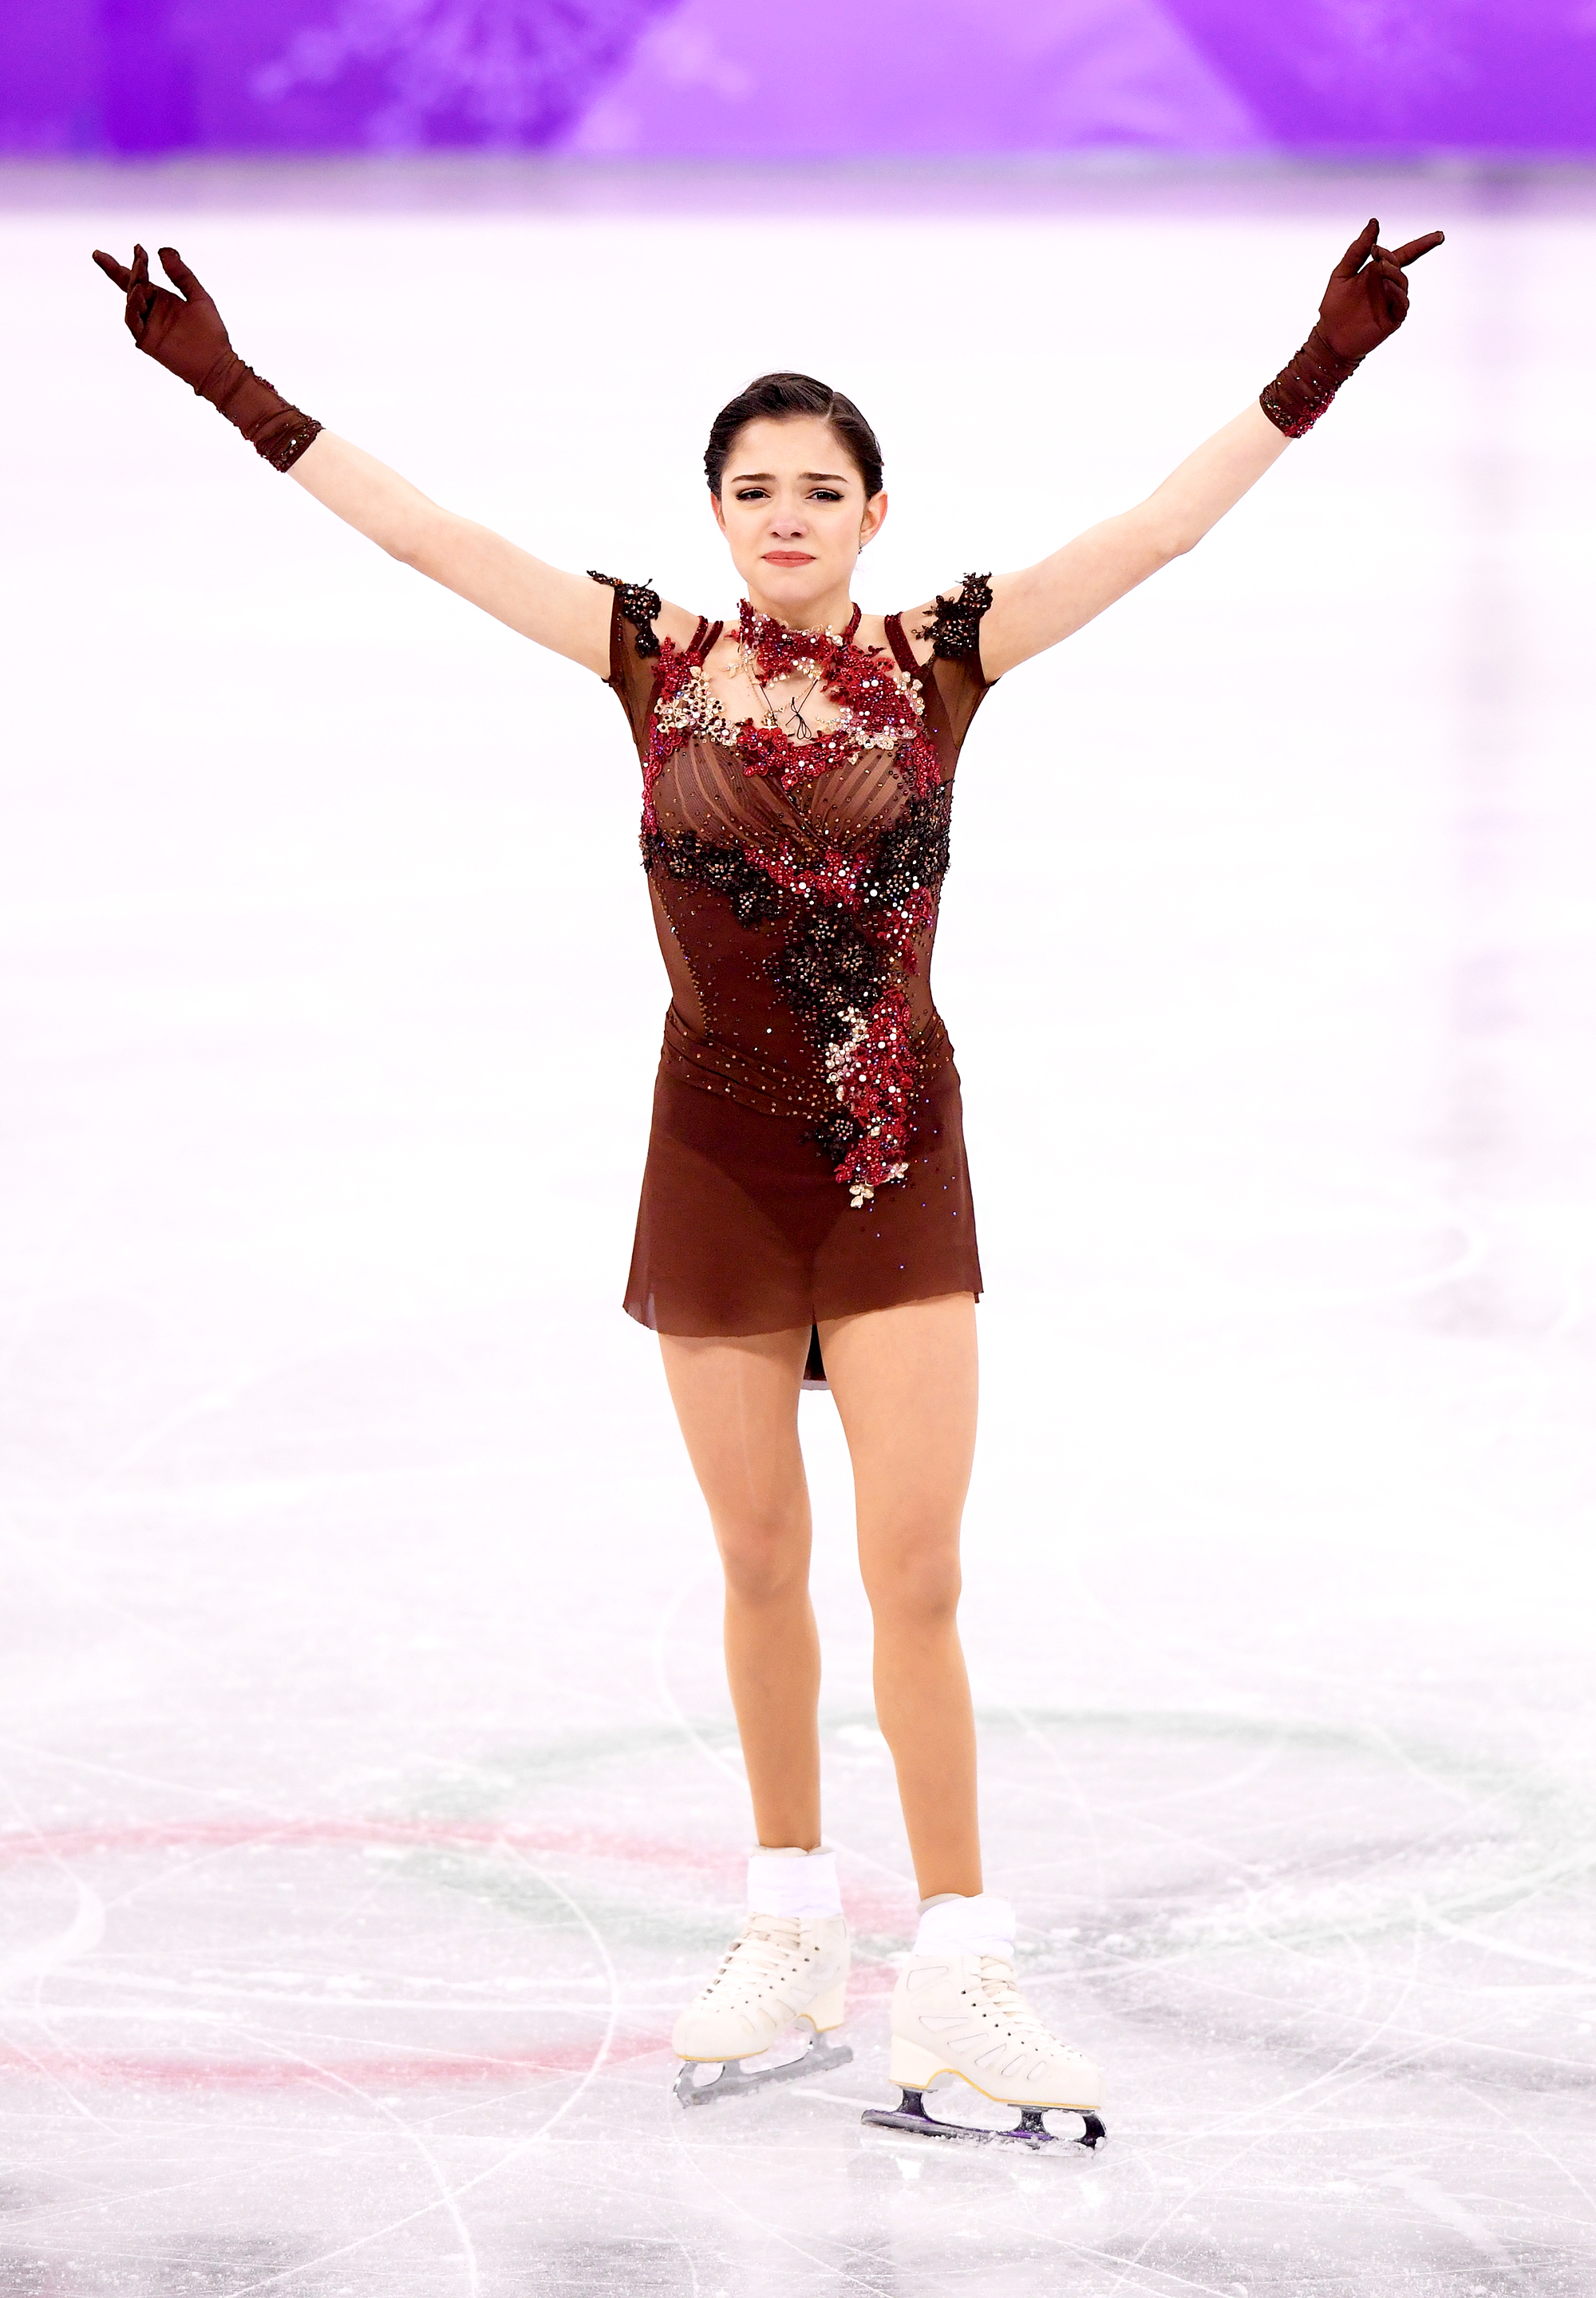 Young Evgenia Medvedeva nudes (58 foto and video), Tits, Paparazzi, Boobs, butt 2006